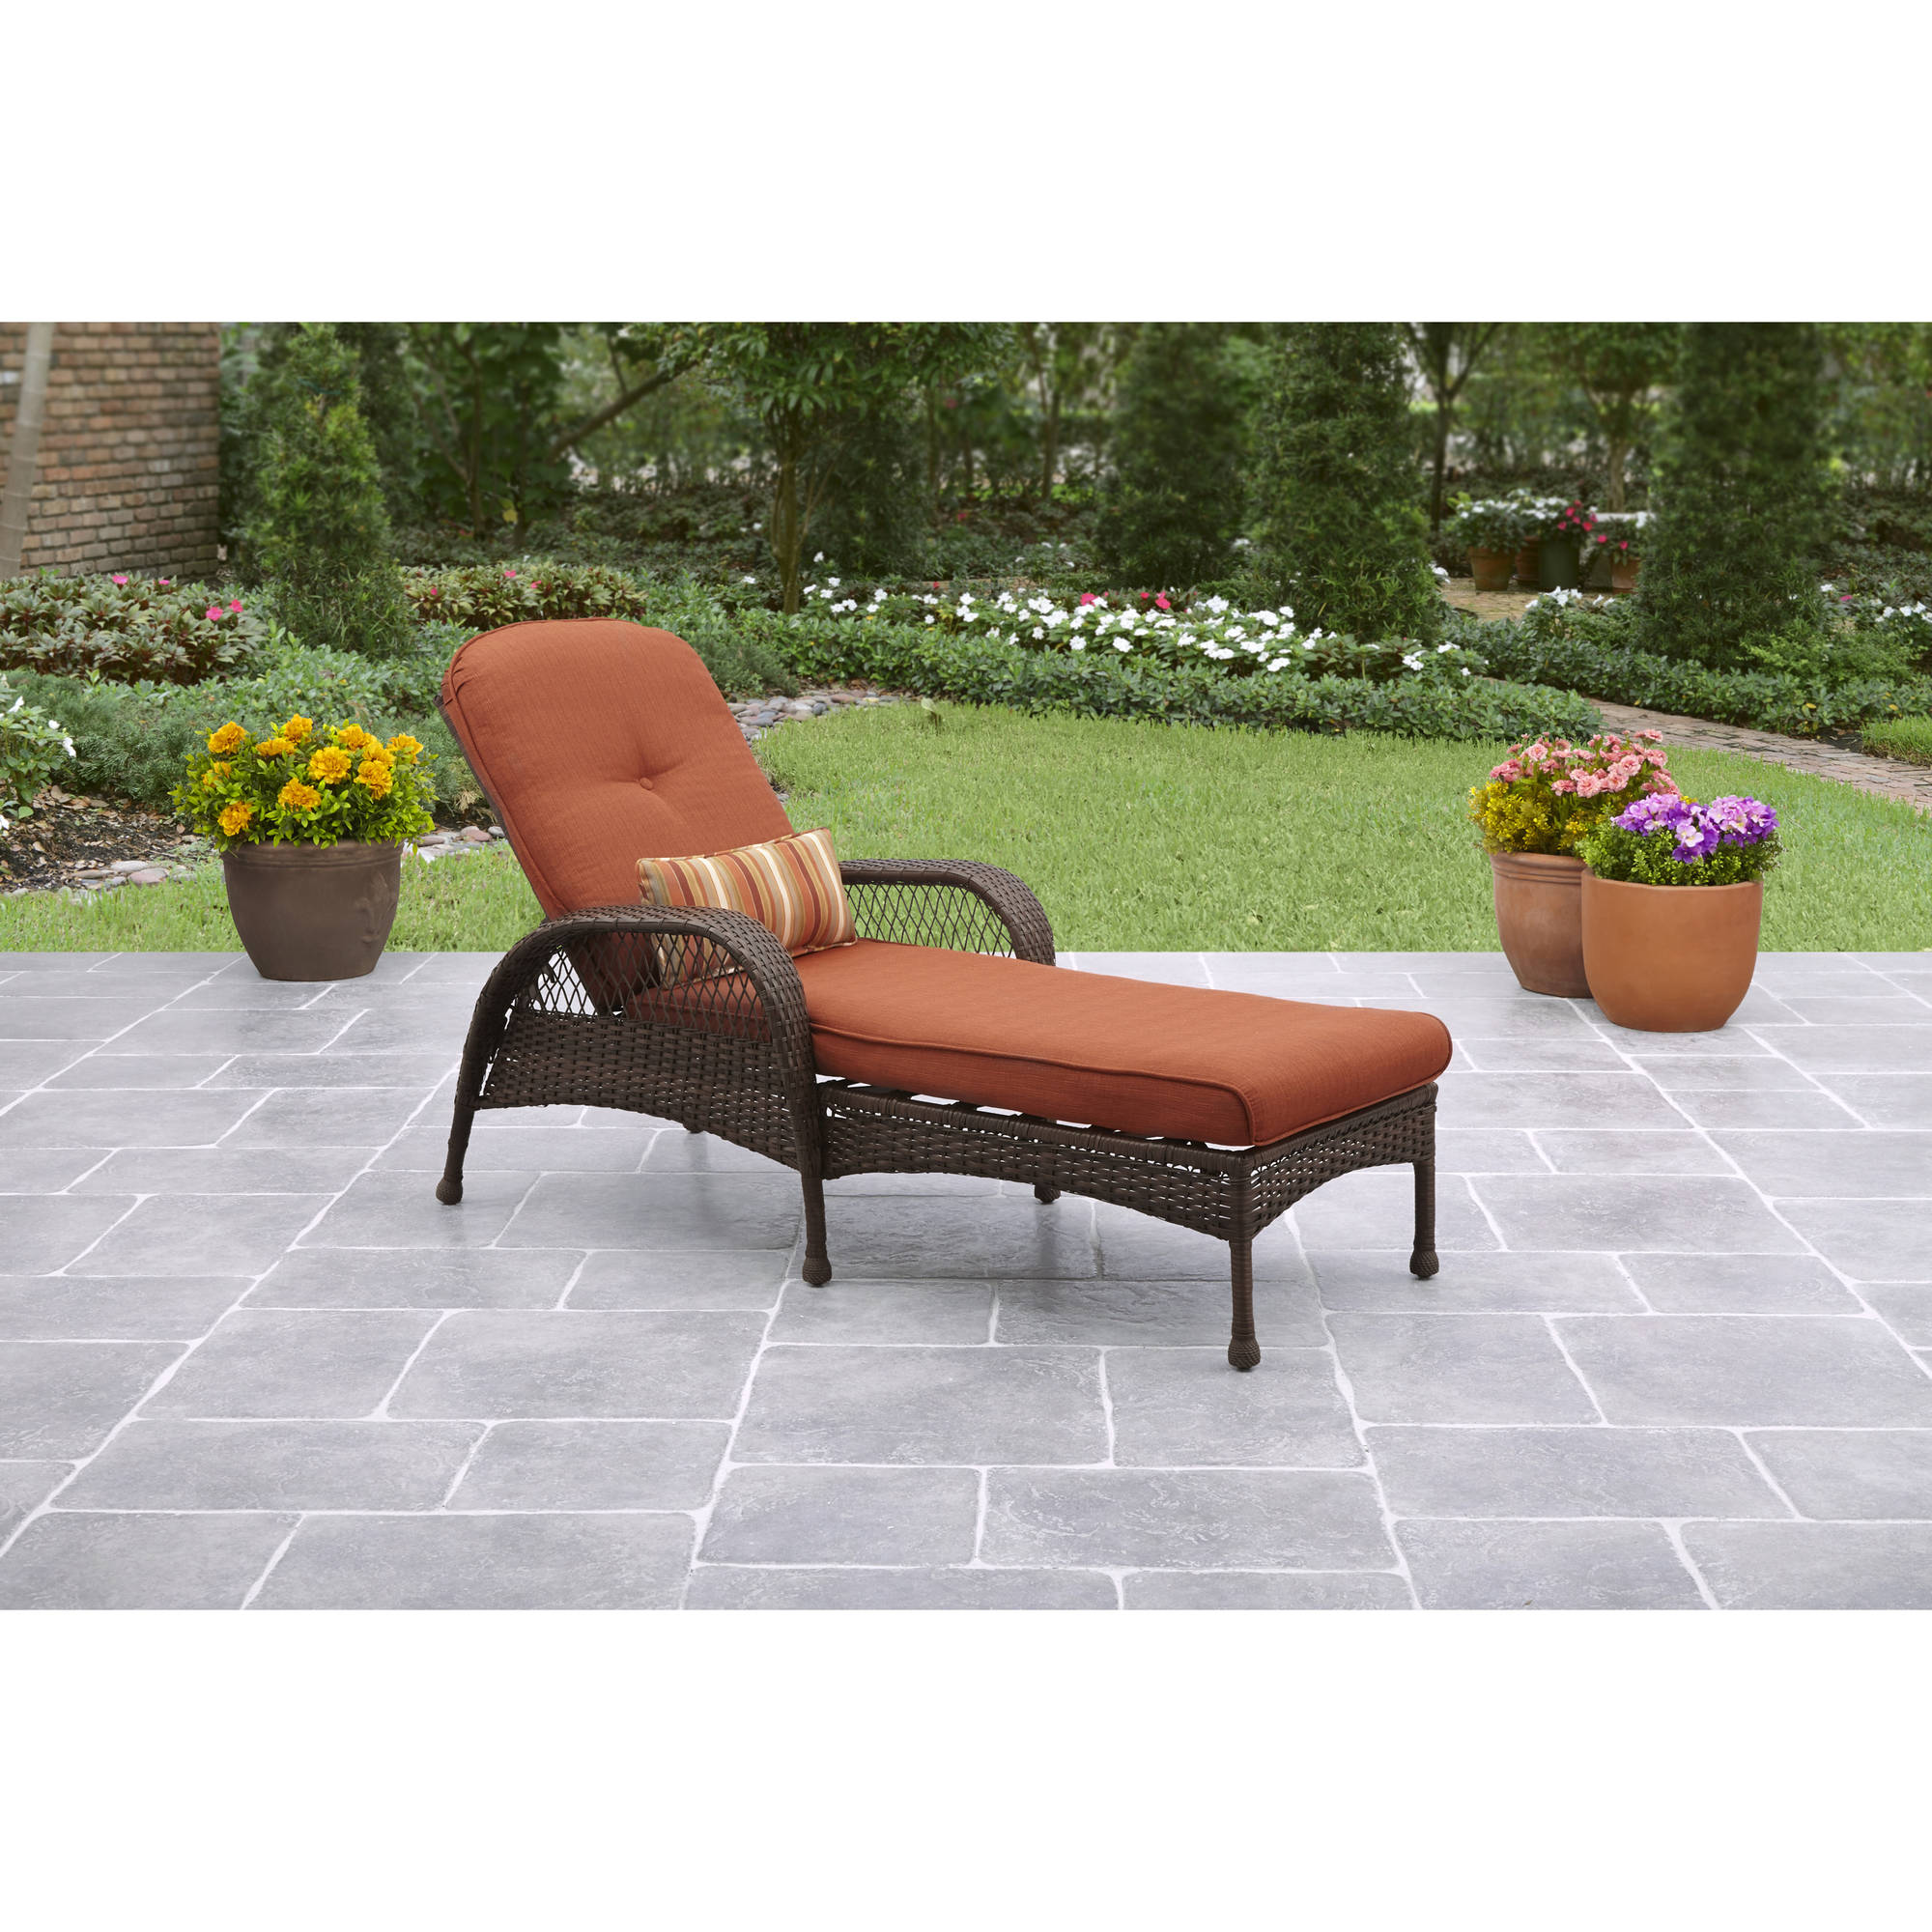 Pool Chaise Lounge Chairs Better Homes Gardens Azalea Ridge Outdoor Chaise Lounge